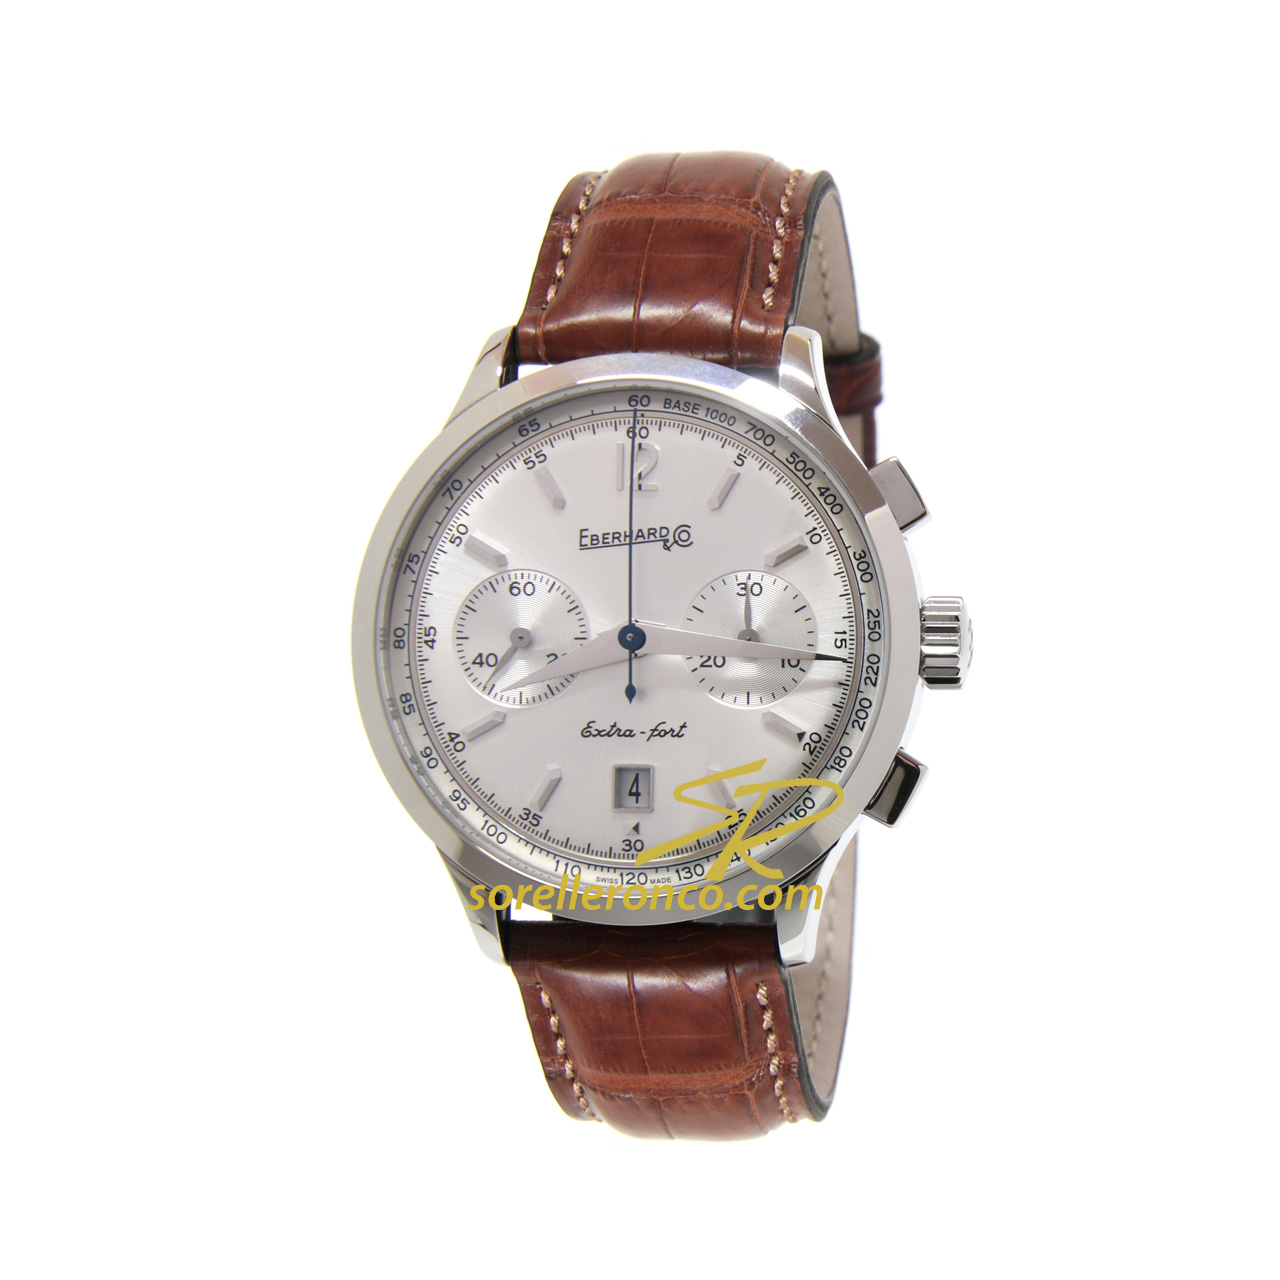 Extra-Fort Chrono Bicompax Grande Taille Silver